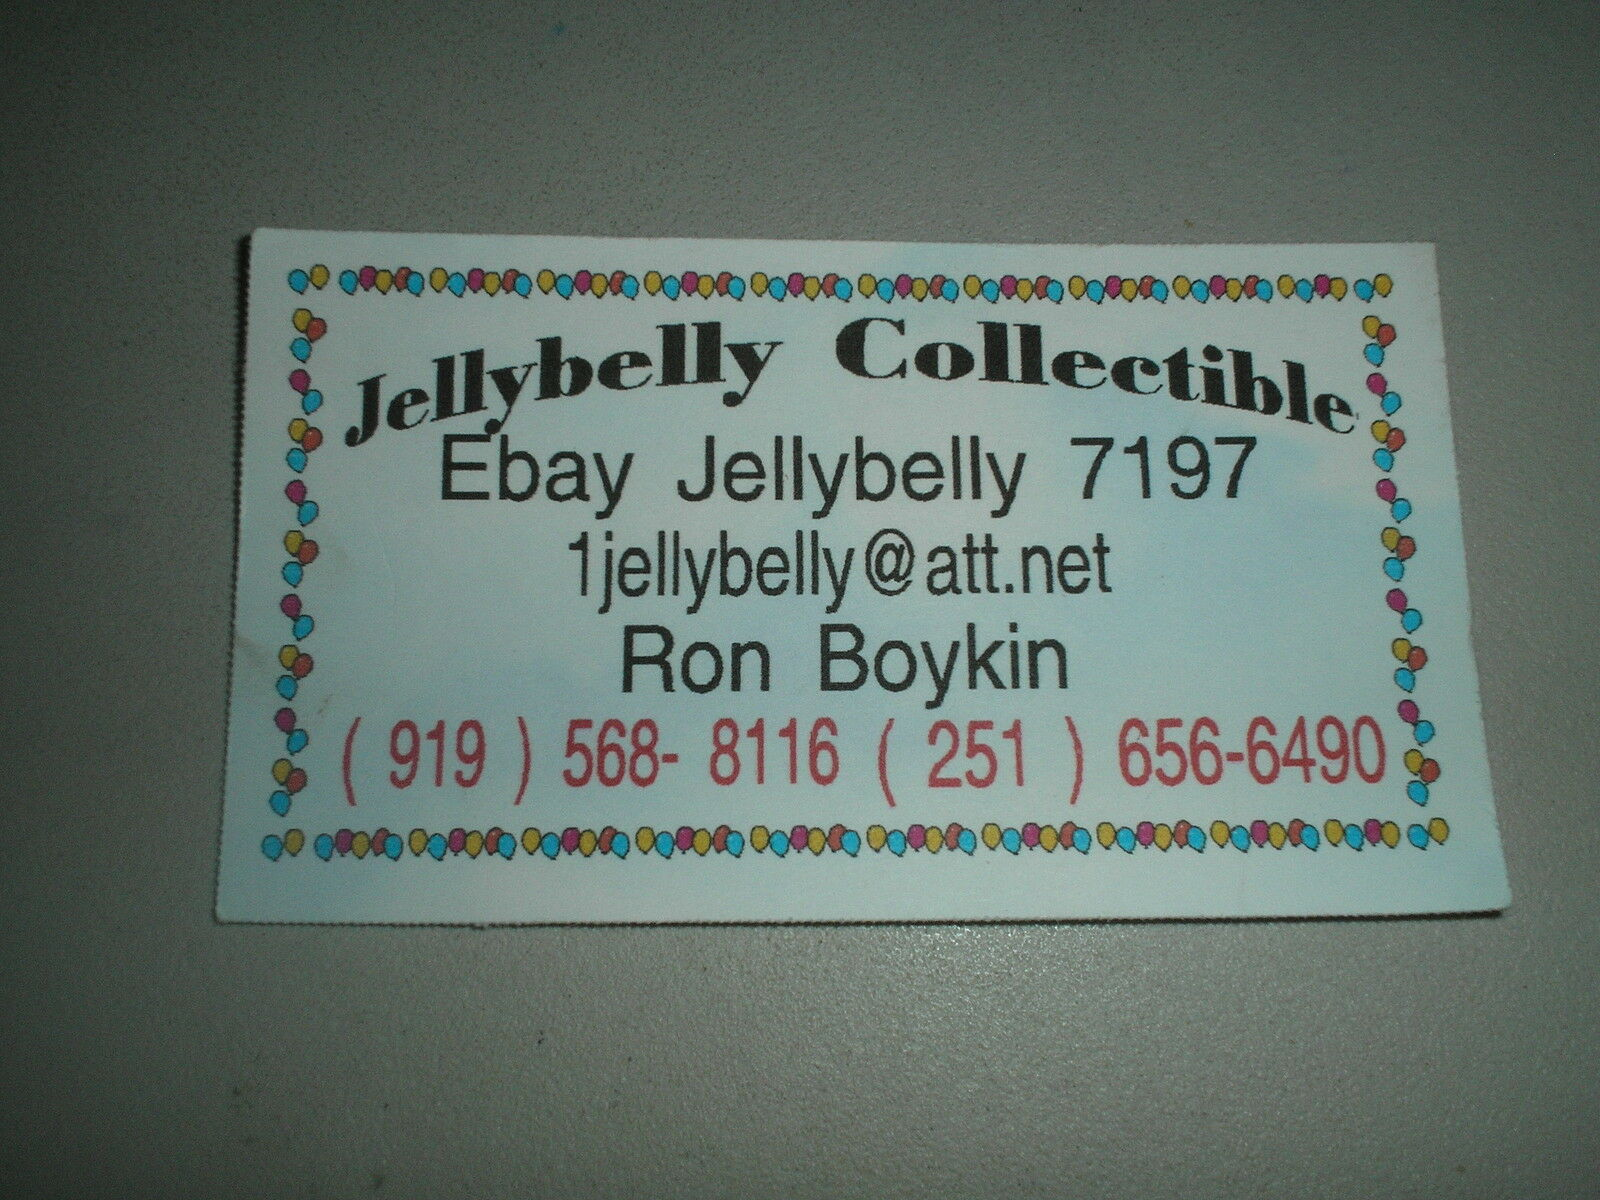 Jellybelly s Collectibles